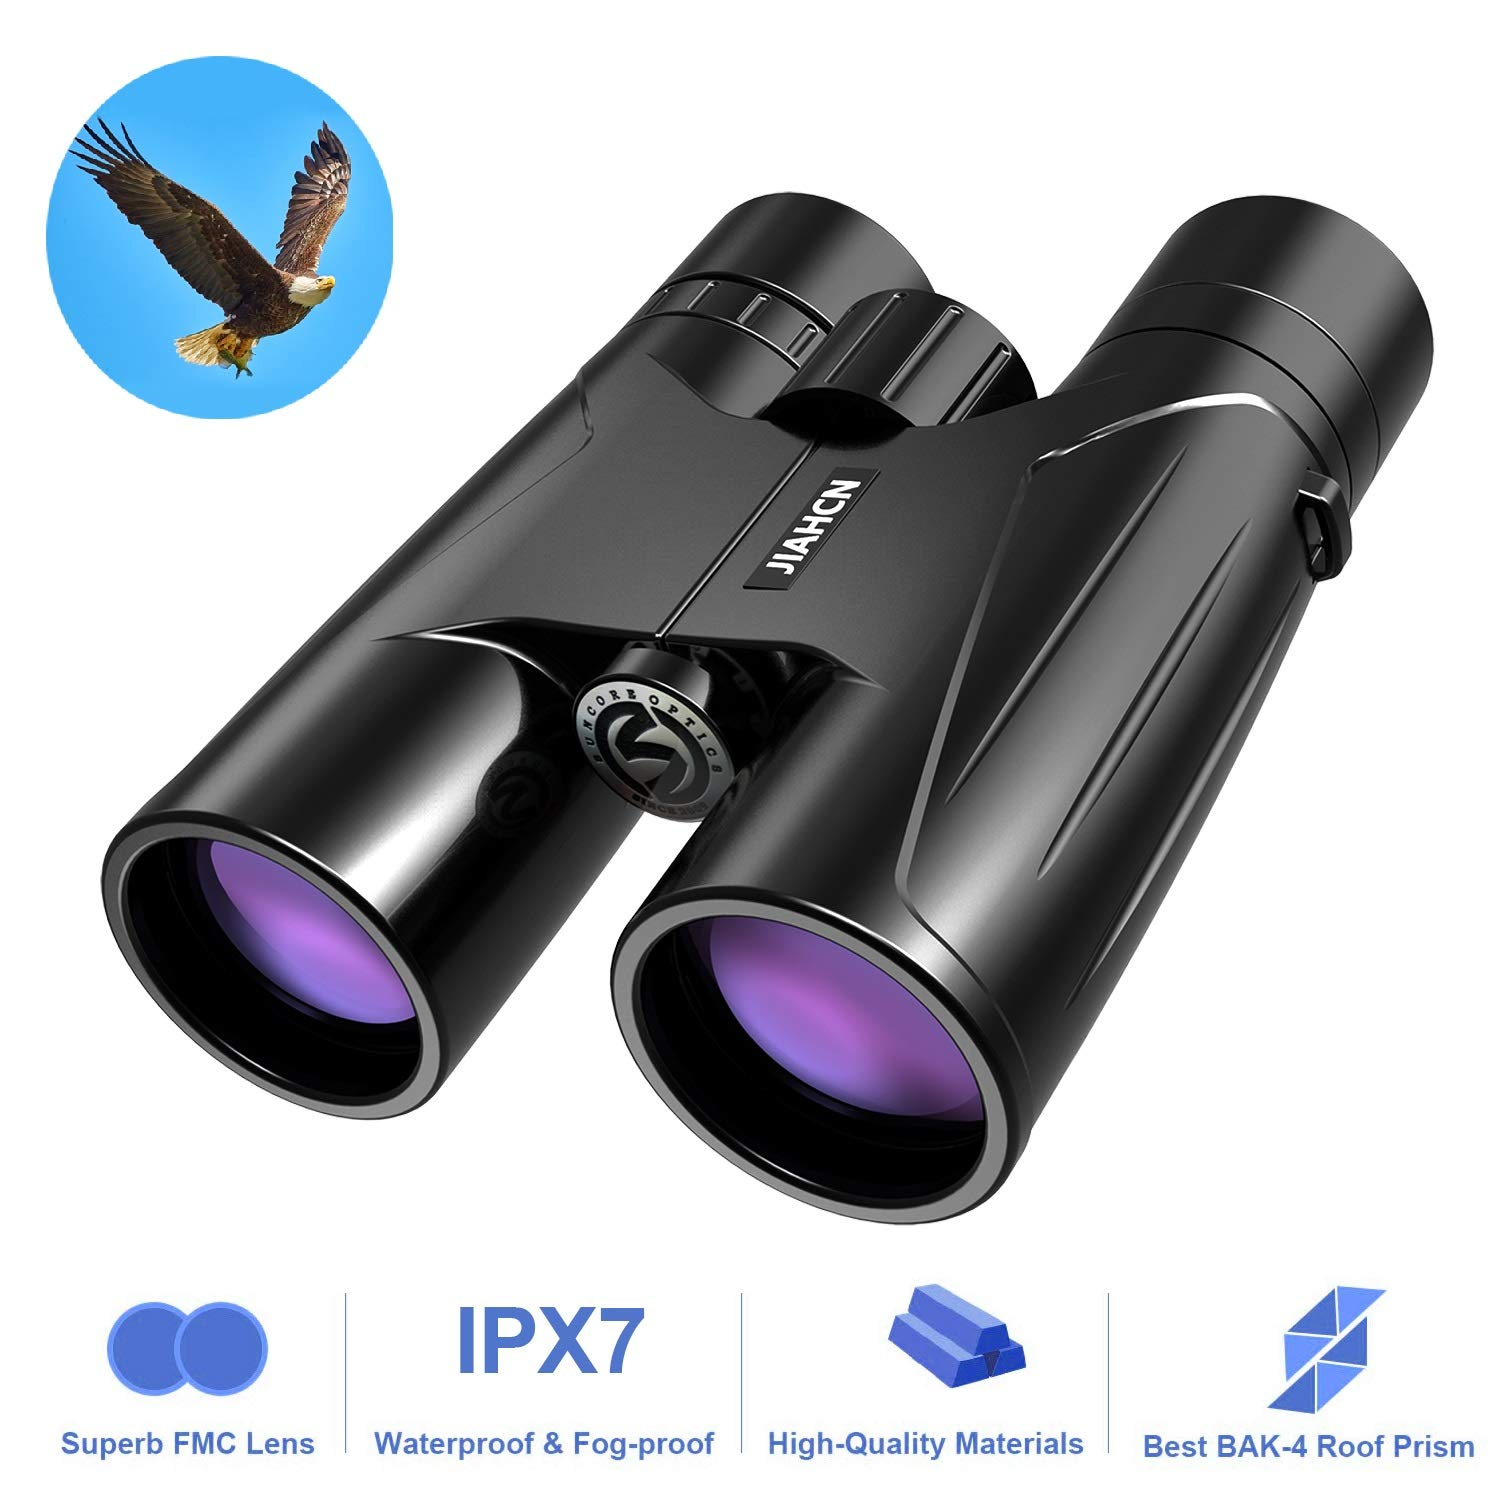 JIAHCN Binoculars for Adults - 10x42 HD Professional Waterproof Binoculars for Bird Watching Travel Stargazing Hunting Concerts Sports with Low Light Night Vision (1.1 pounds)